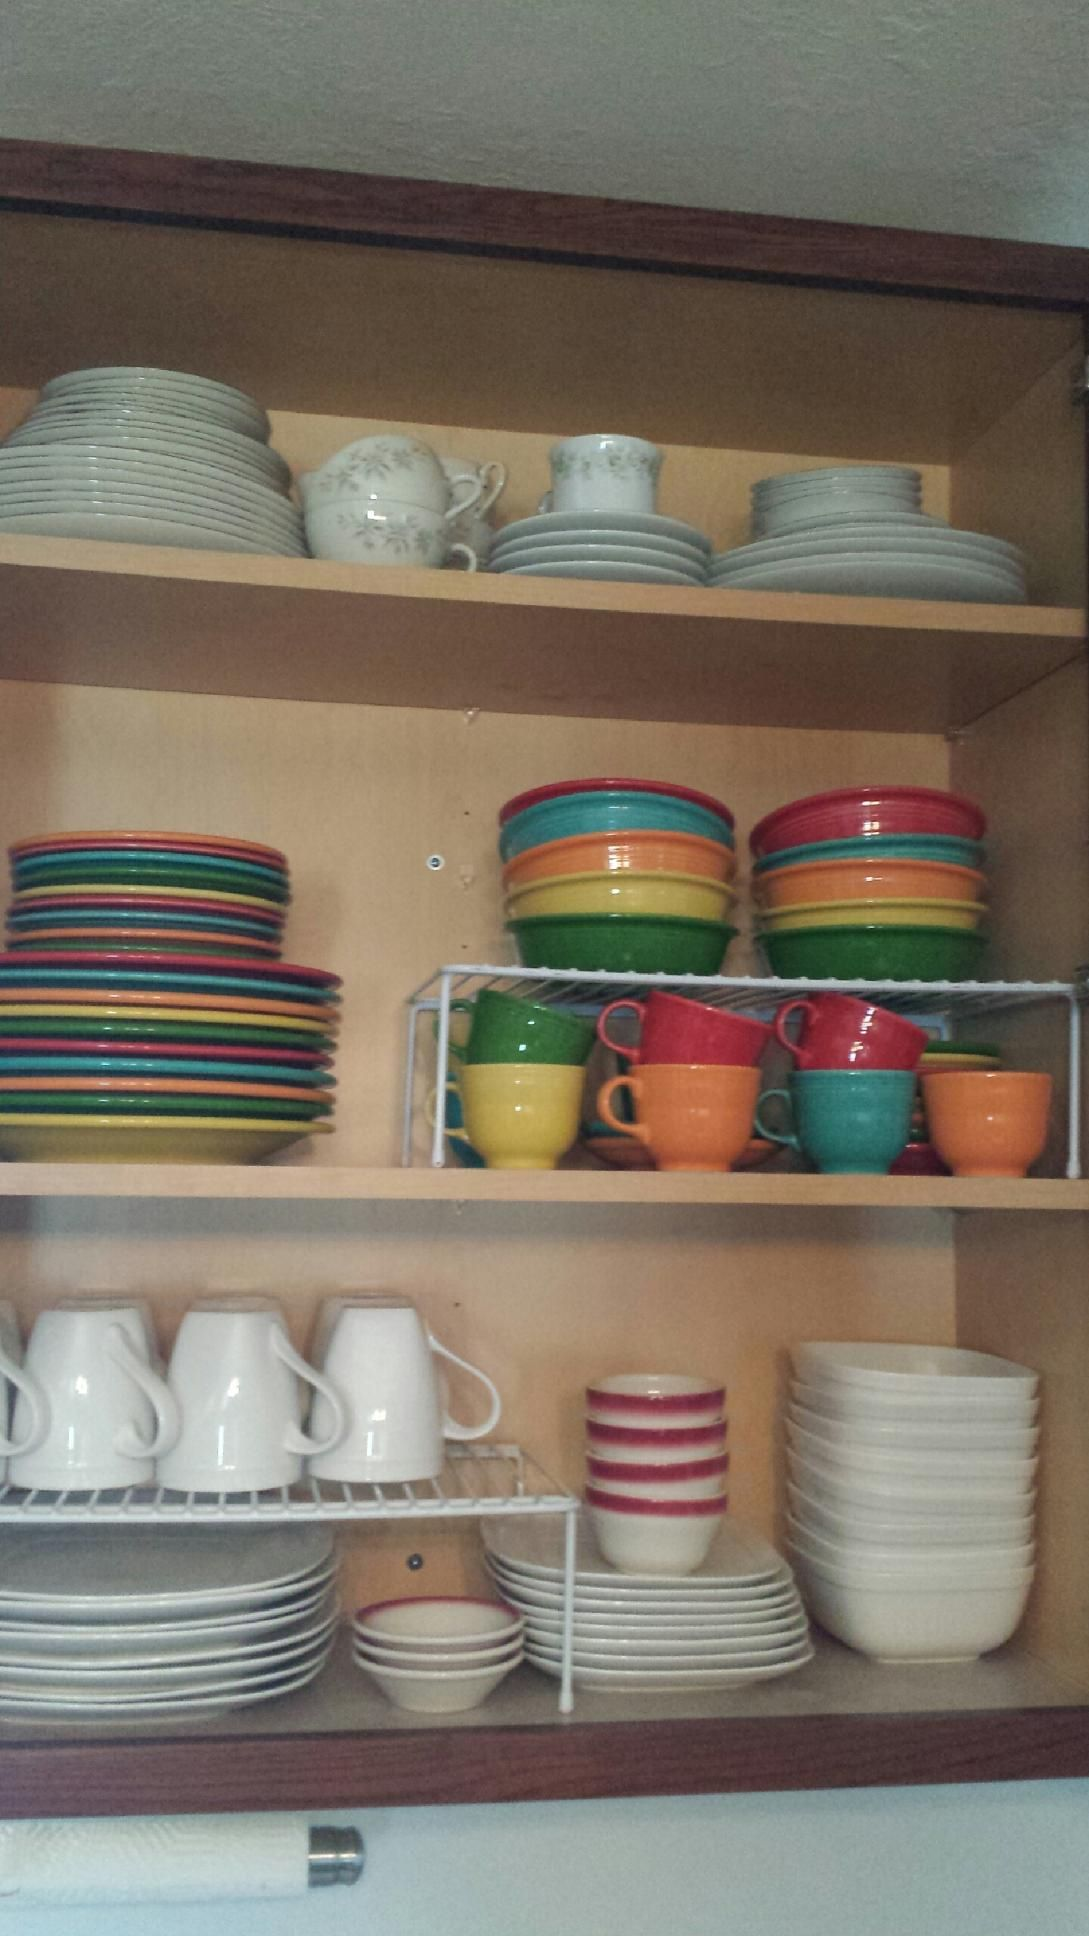 beautifully organized dishes cabinet organizing in 2019 kitchen organization kitchen on kitchen organization dishes id=82511